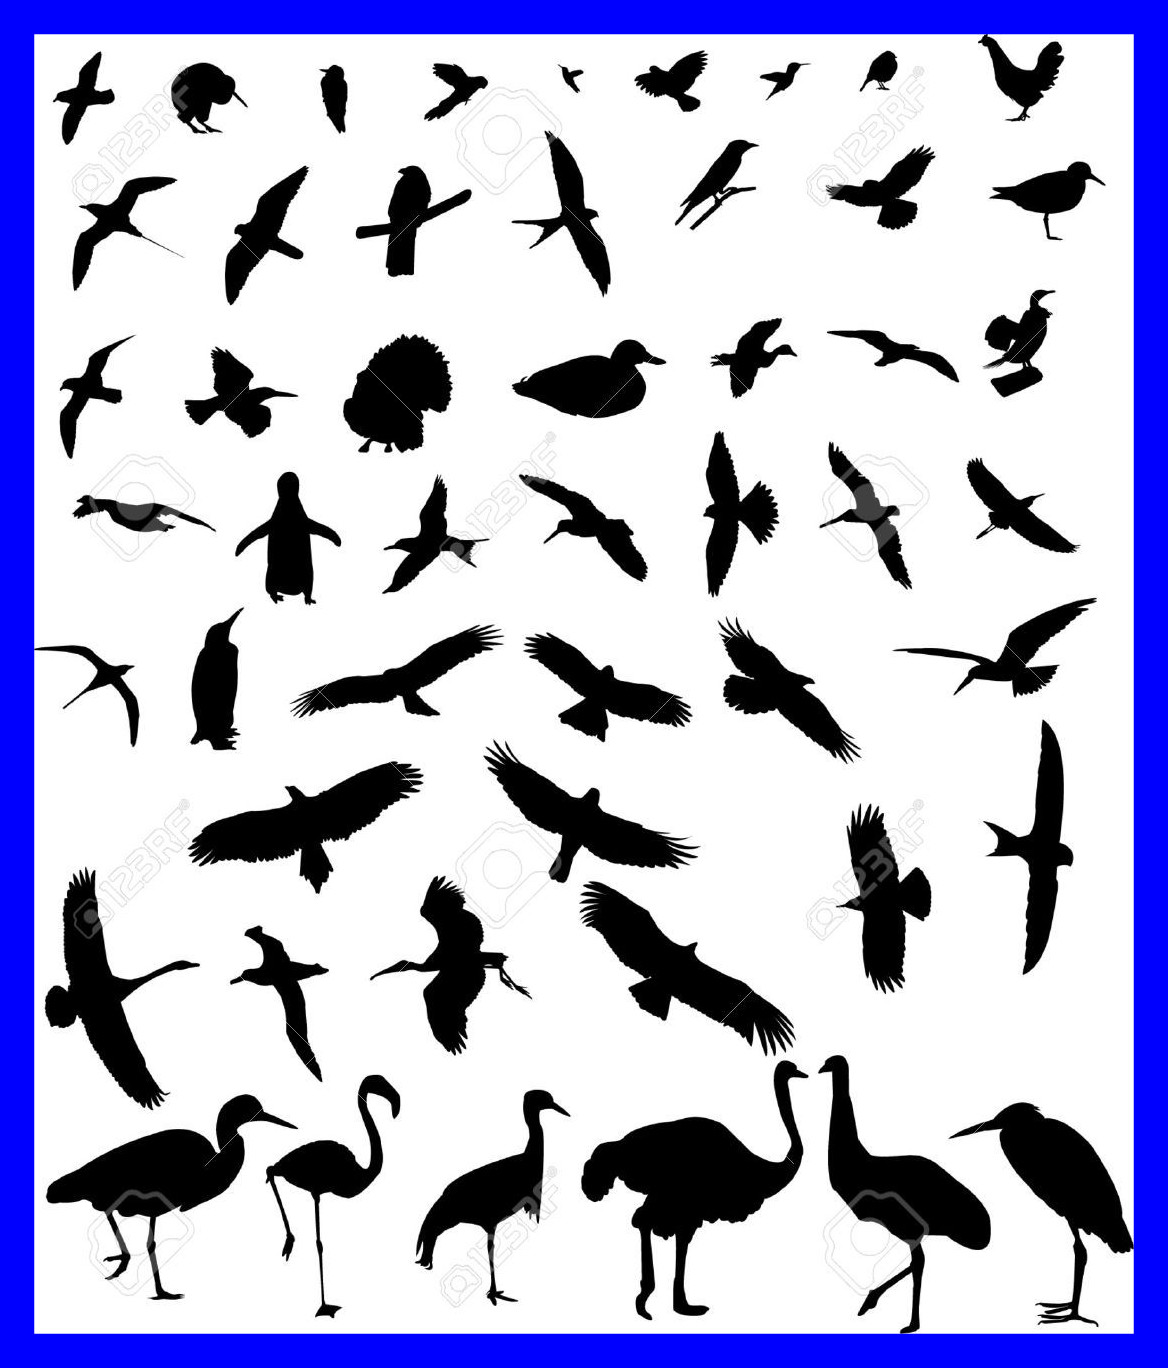 1168x1368 Astonishing Collection Silhouette Royalty Cliparts Vectors